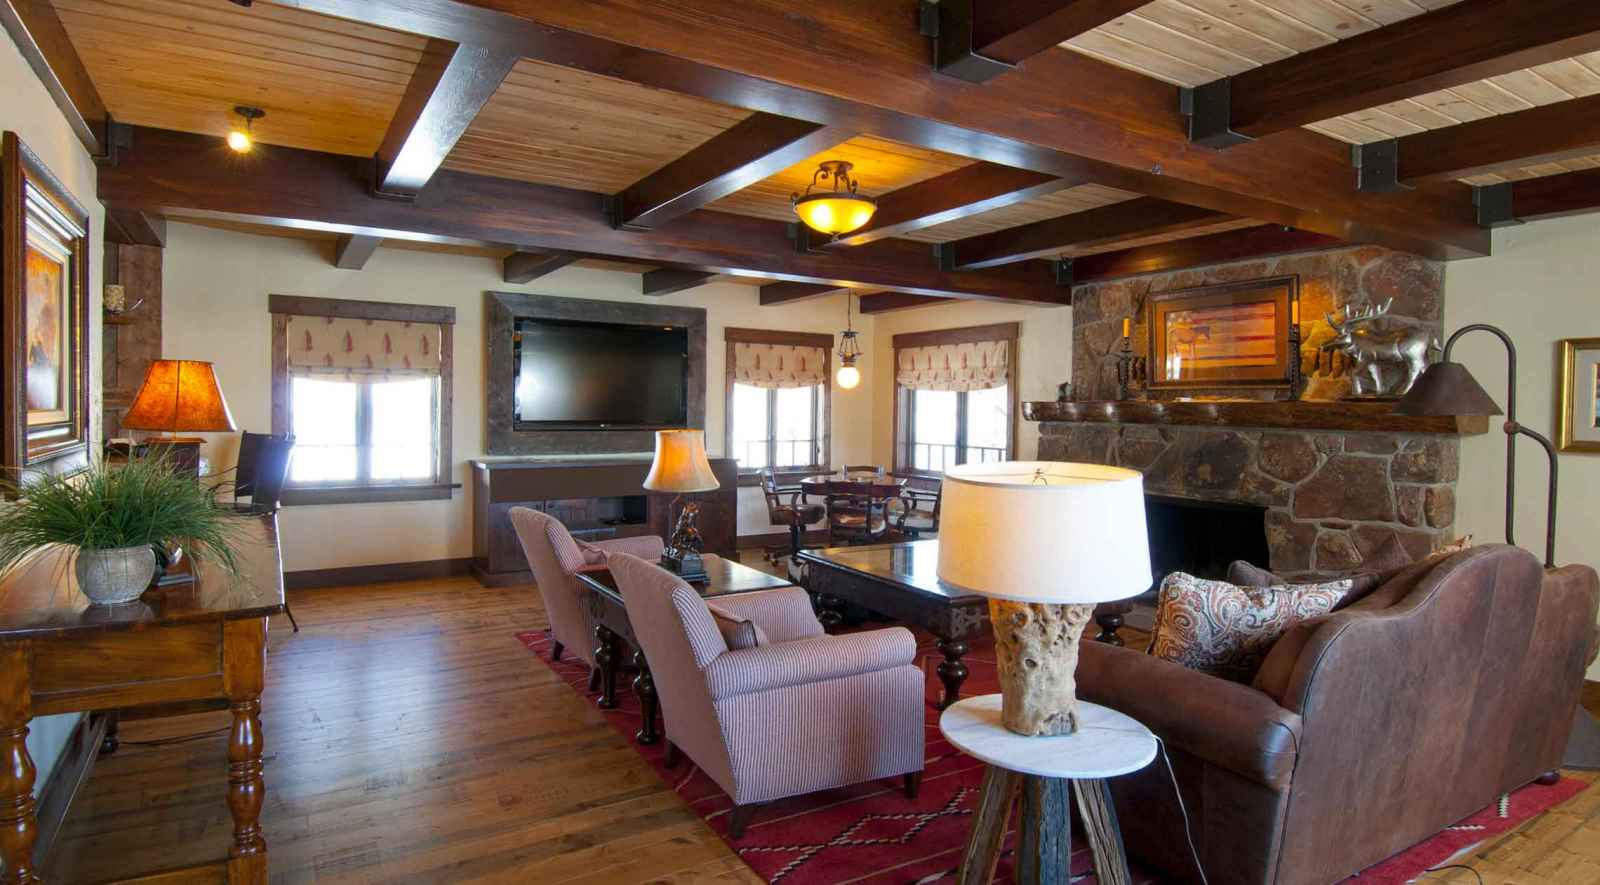 Midnight trail lodge colorado vacation rental homes c for Trail lodge